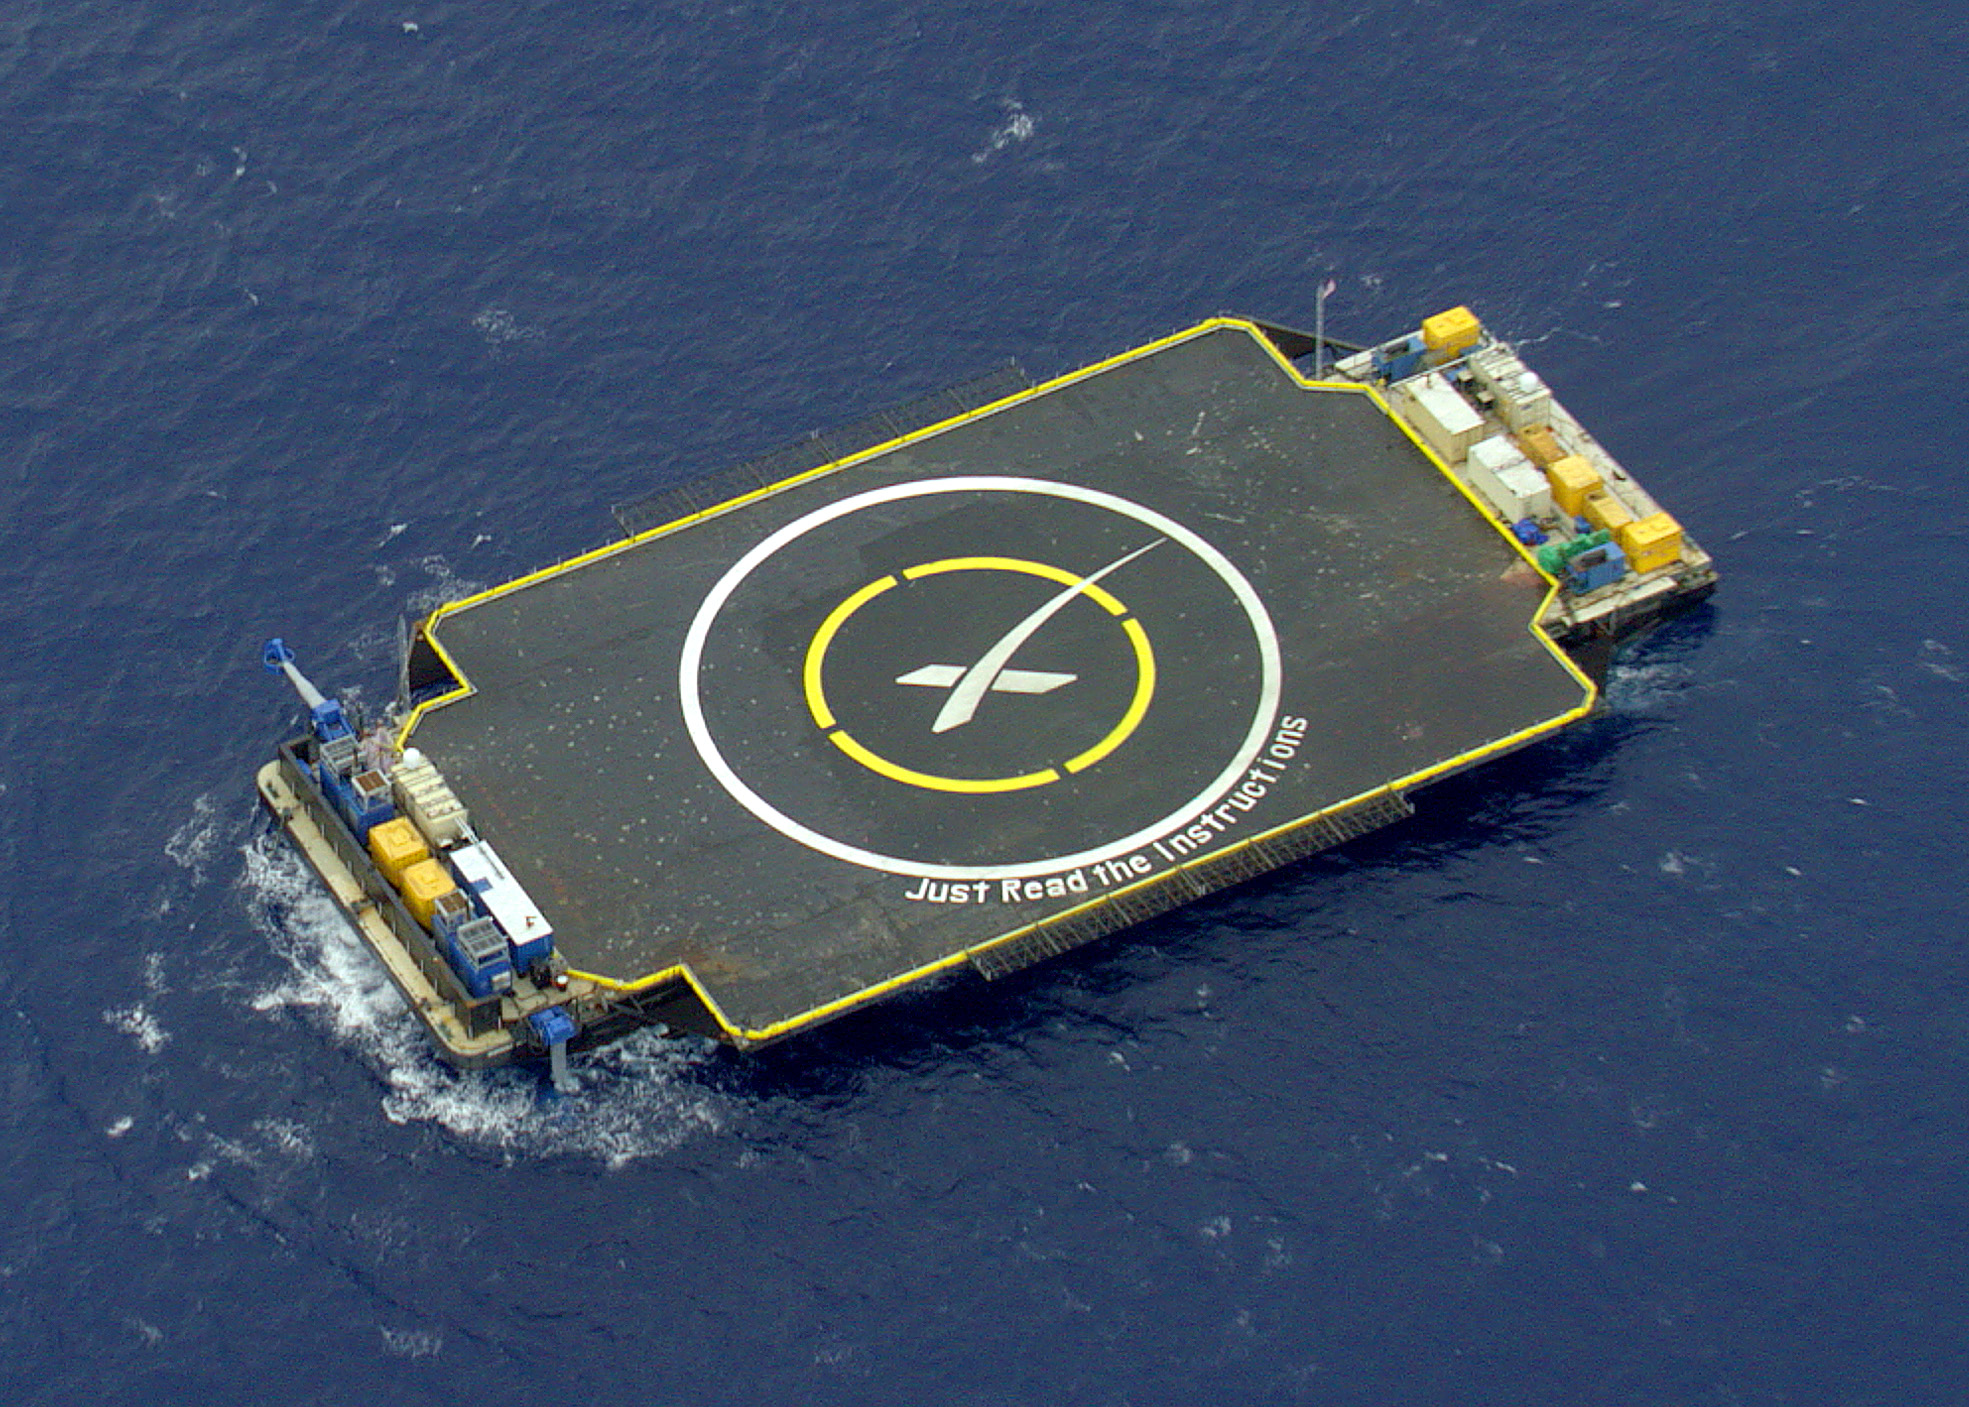 SpaceX_ASDS_in_position_prior_to_Falcon_9_Flight_17_carrying_CRS-6_(17127808431)